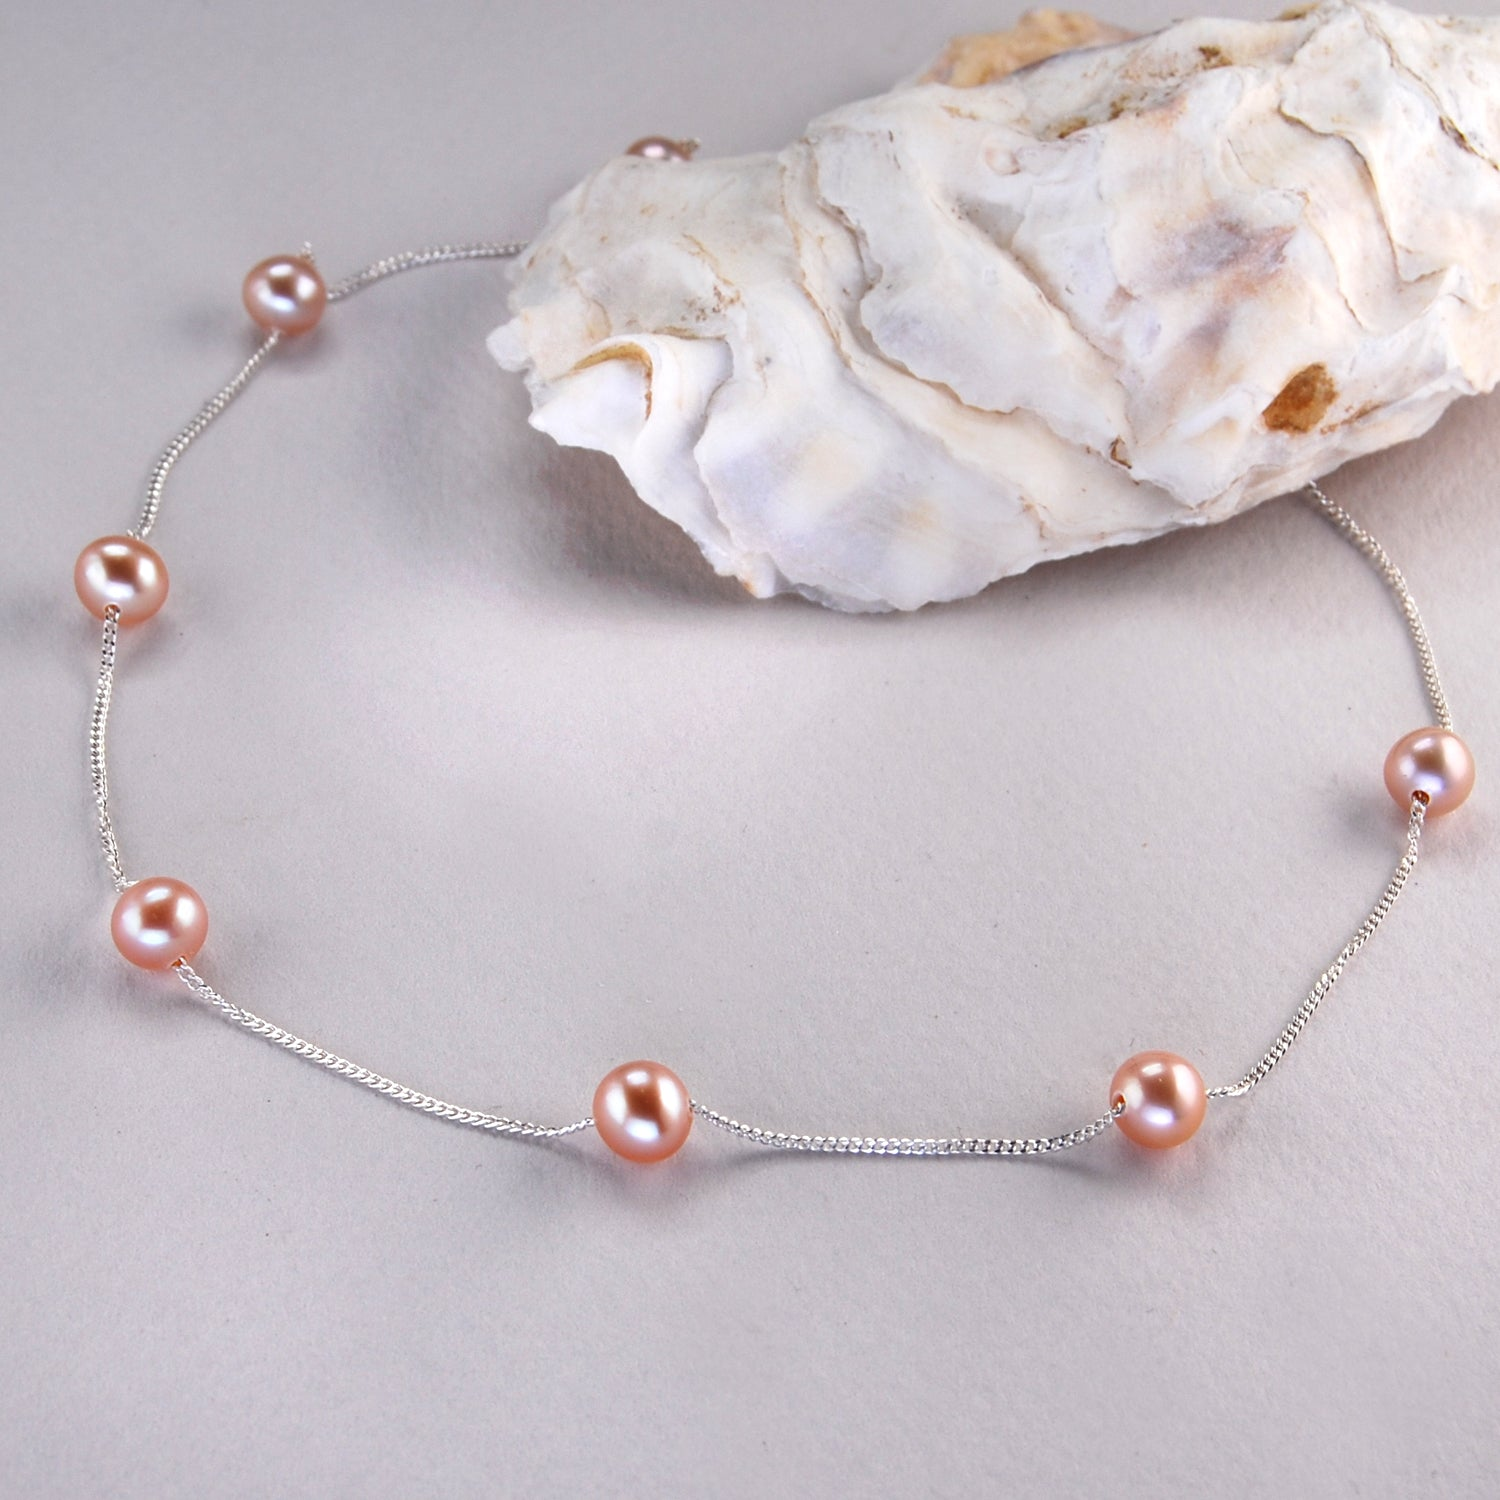 Large round Freshwater Pearl Spacer Necklace on Silver Chain in Pink